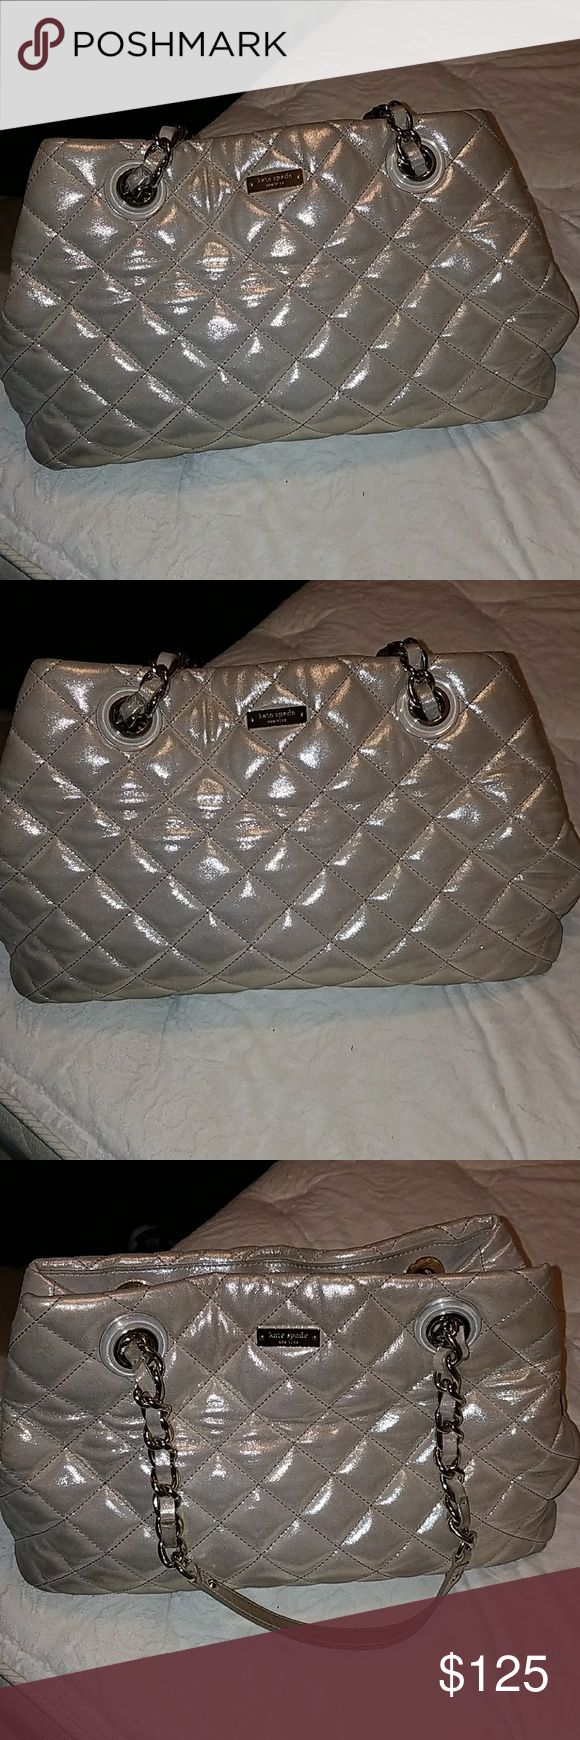 Kate spade gold coast bag Quilted fabric tote in a metallic gold.  Great condition.  Large bag.  Snap top closure with a zip divider in the middle of this bag.  Plenty of space for all your daily needs plus some extra!  16x10 inches kate spade Bags Shoulder Bags